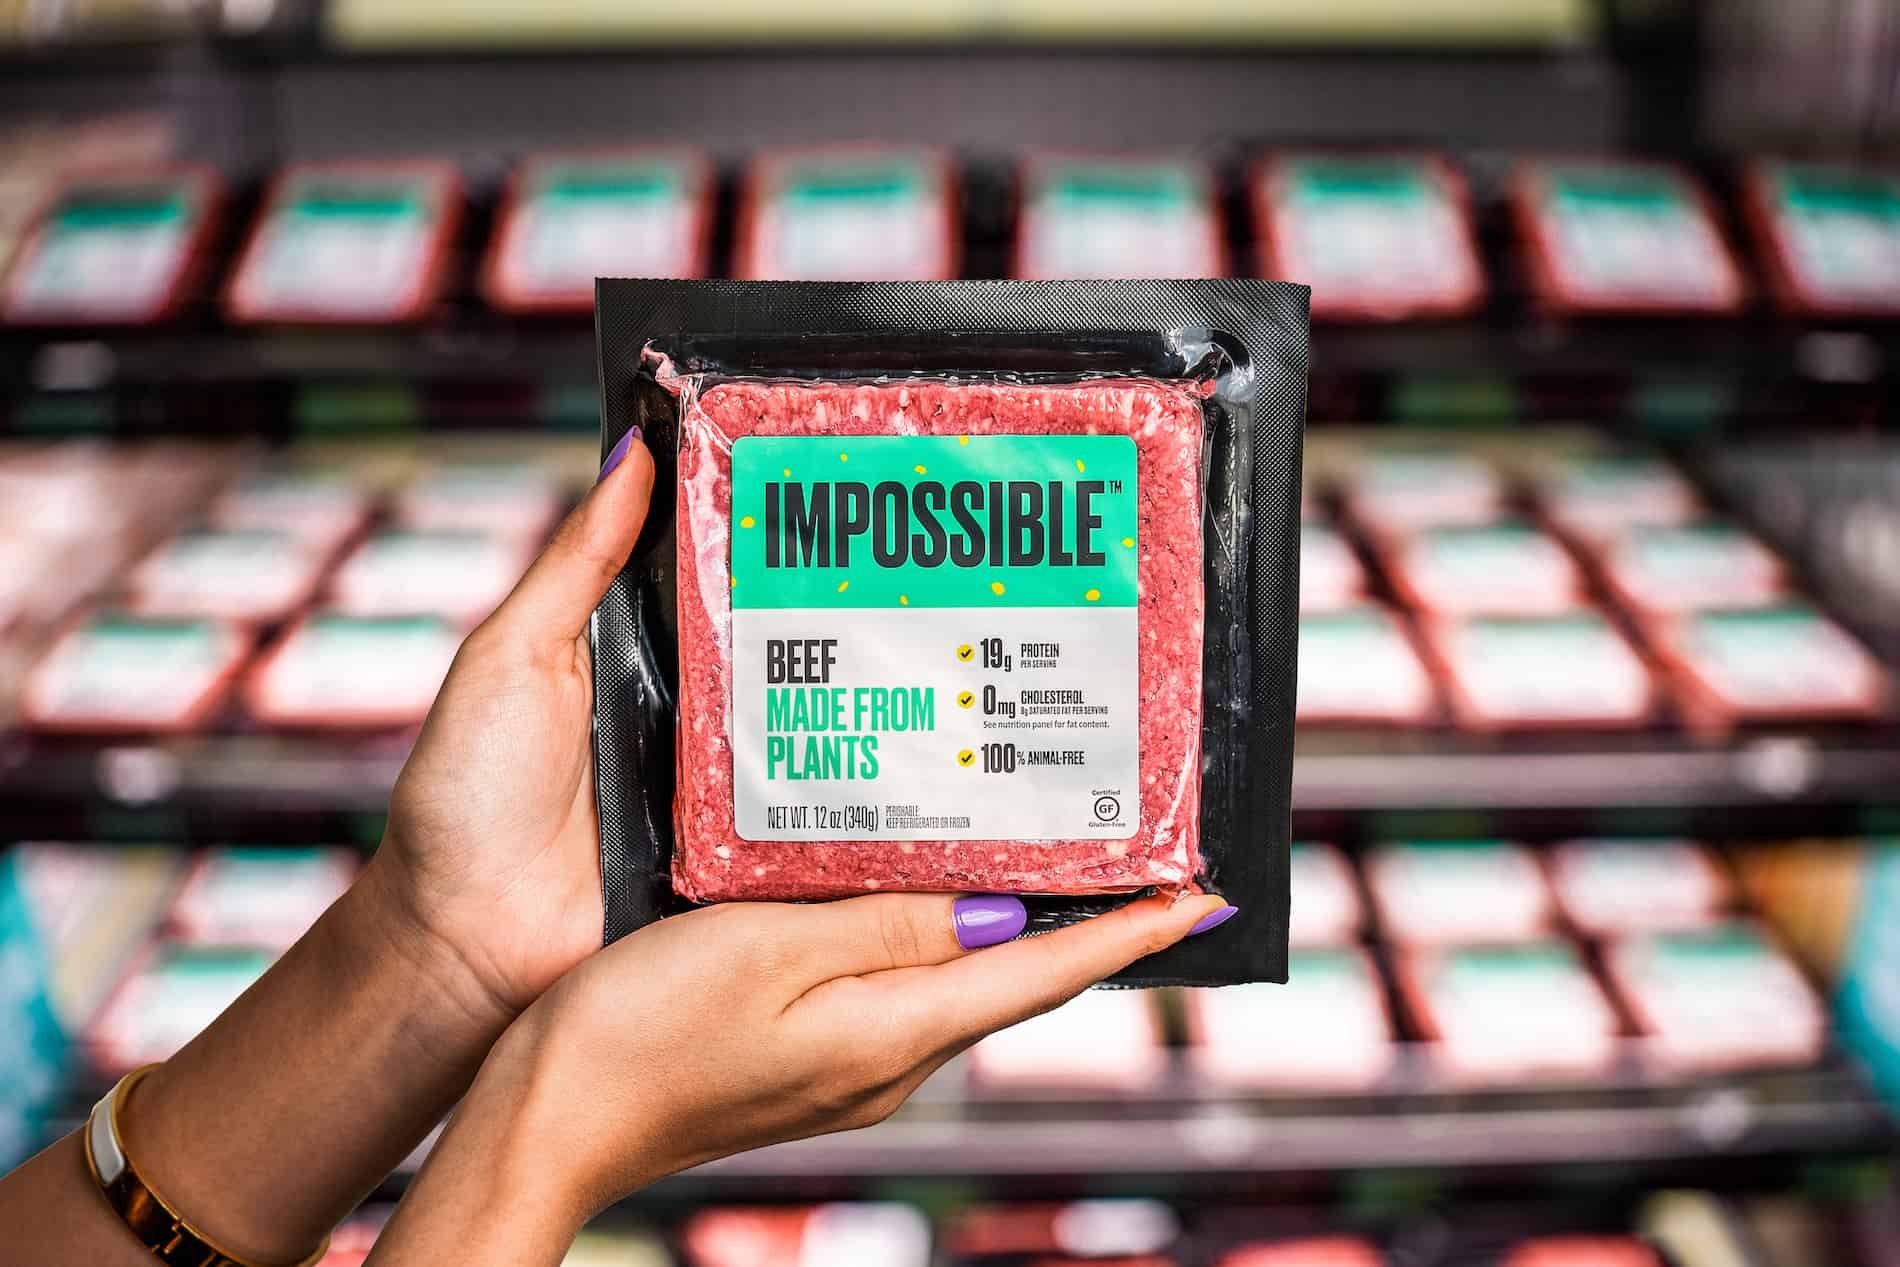 Impossible Beef retail pack